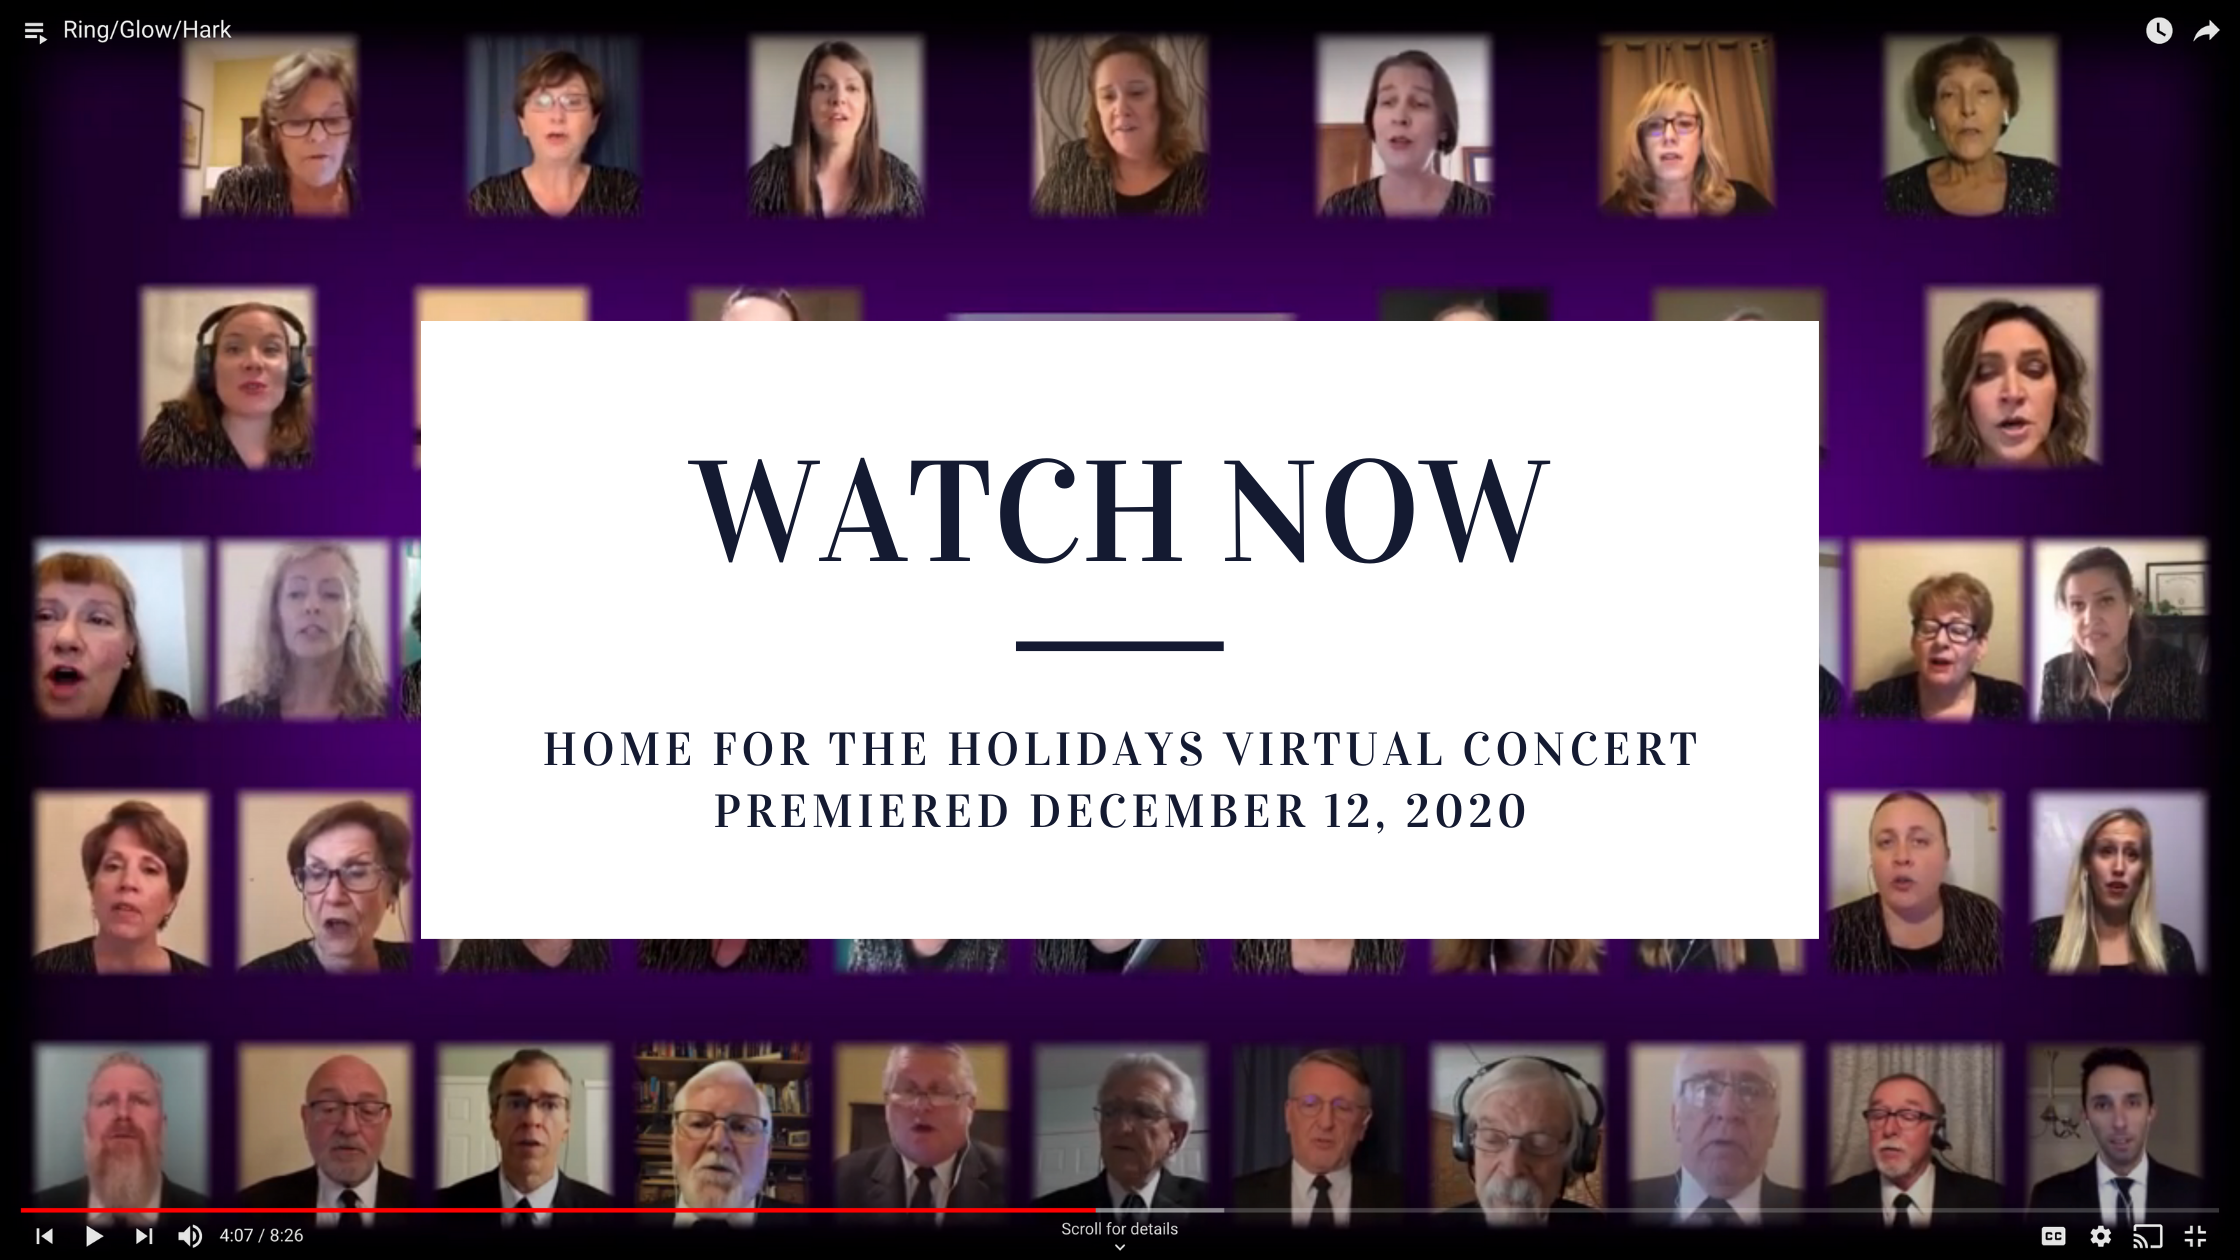 Watch and listen to Home for the Holidays - virtual concert premiered december 12, 2020